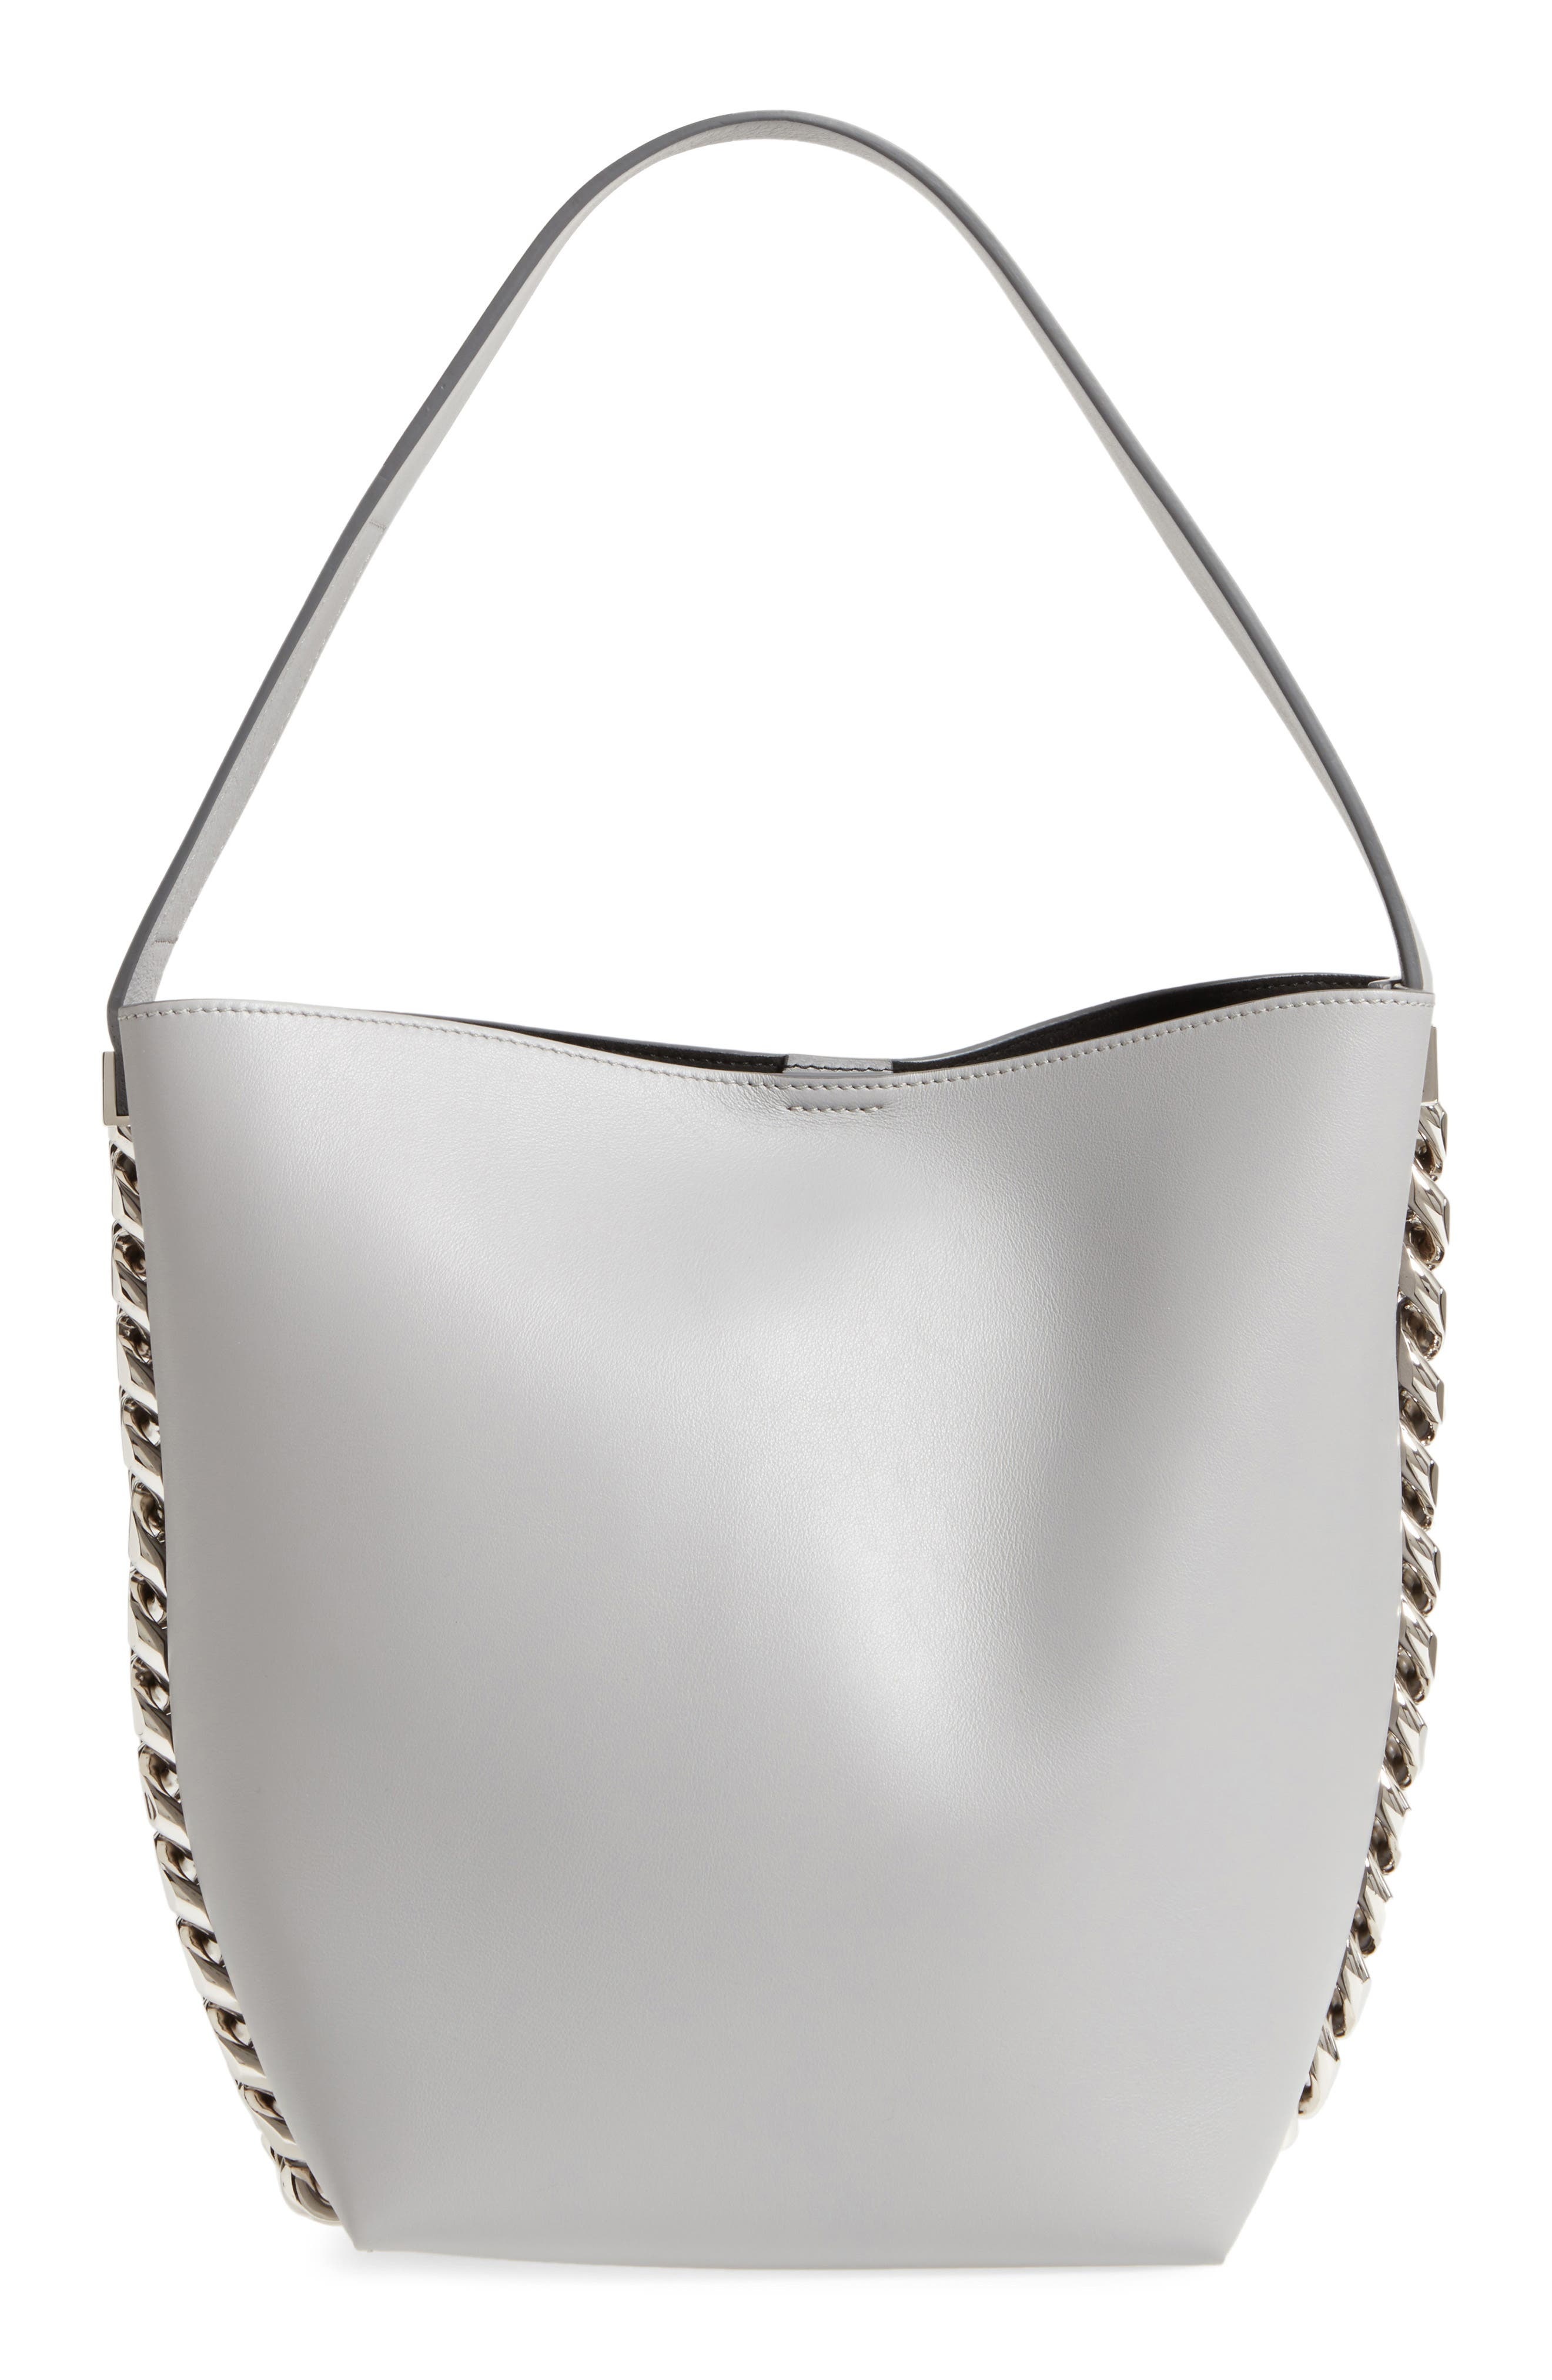 Alternate Image 1 Selected - Givenchy Infinity Calfskin Leather Bucket Bag